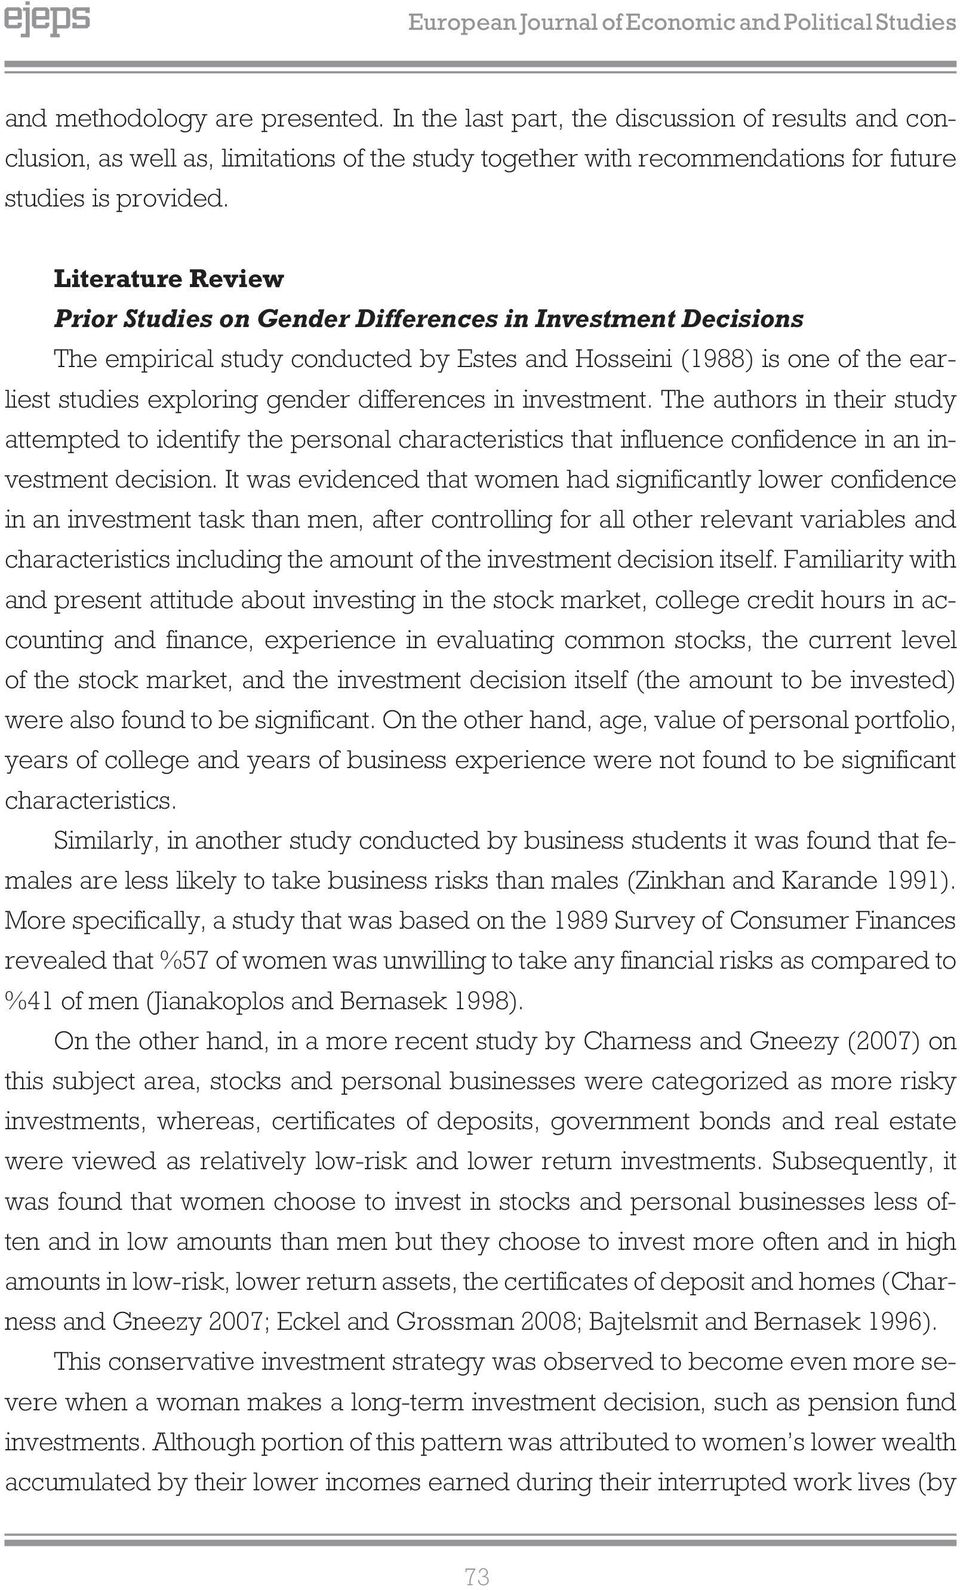 Literature Review Prior Studies on Gender Differences in Investment Decisions The empirical study conducted by Estes and Hosseini (1988) is one of the earliest studies exploring gender differences in